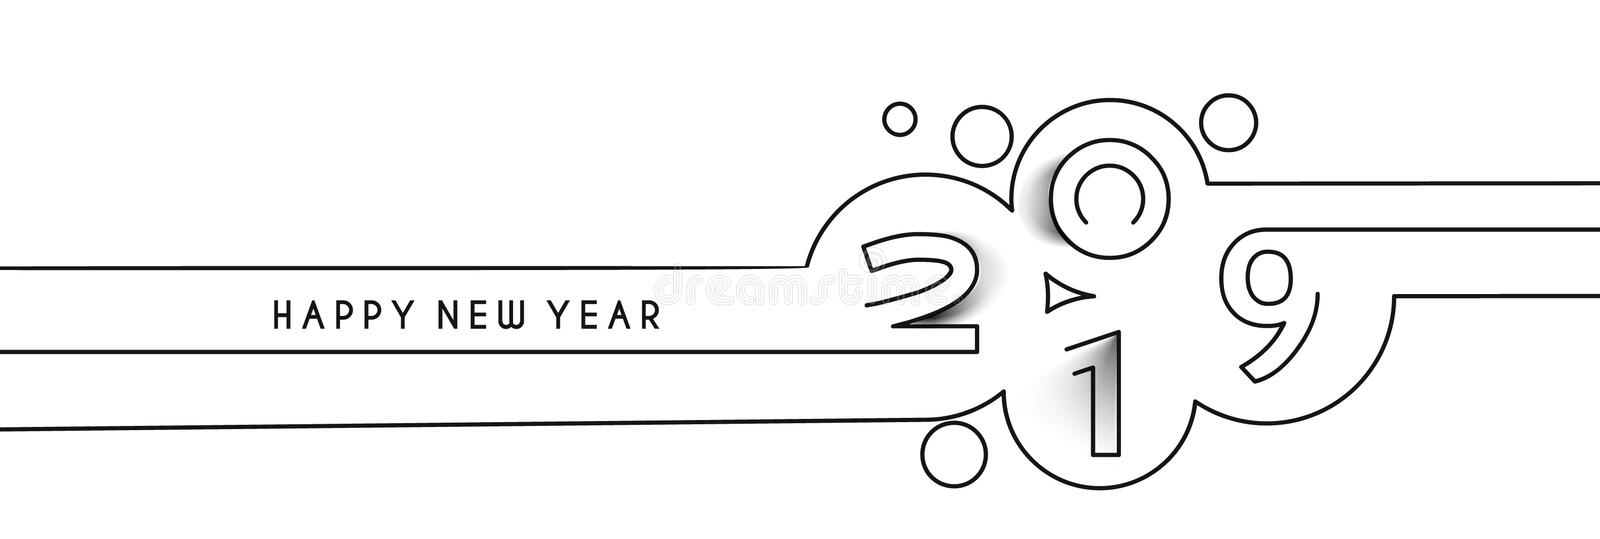 Happy New Year 2019 Line Text Design. Vector illustration royalty free illustration